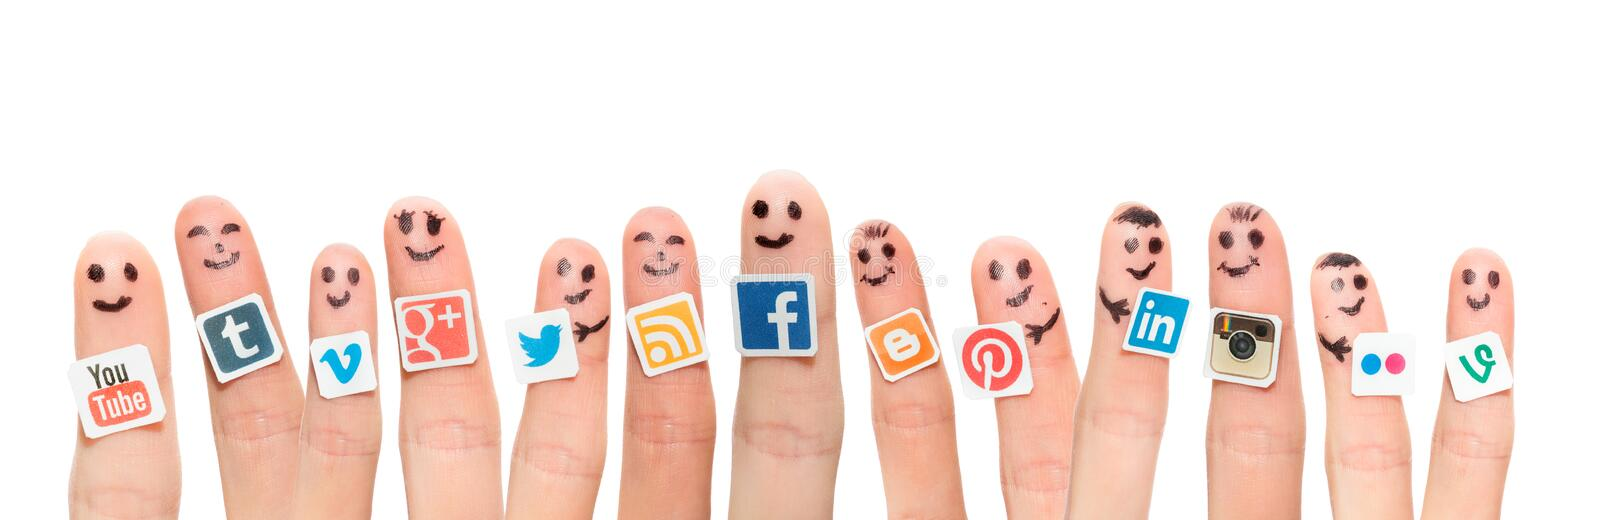 Finger with popular social media logos printed on paper. stock image